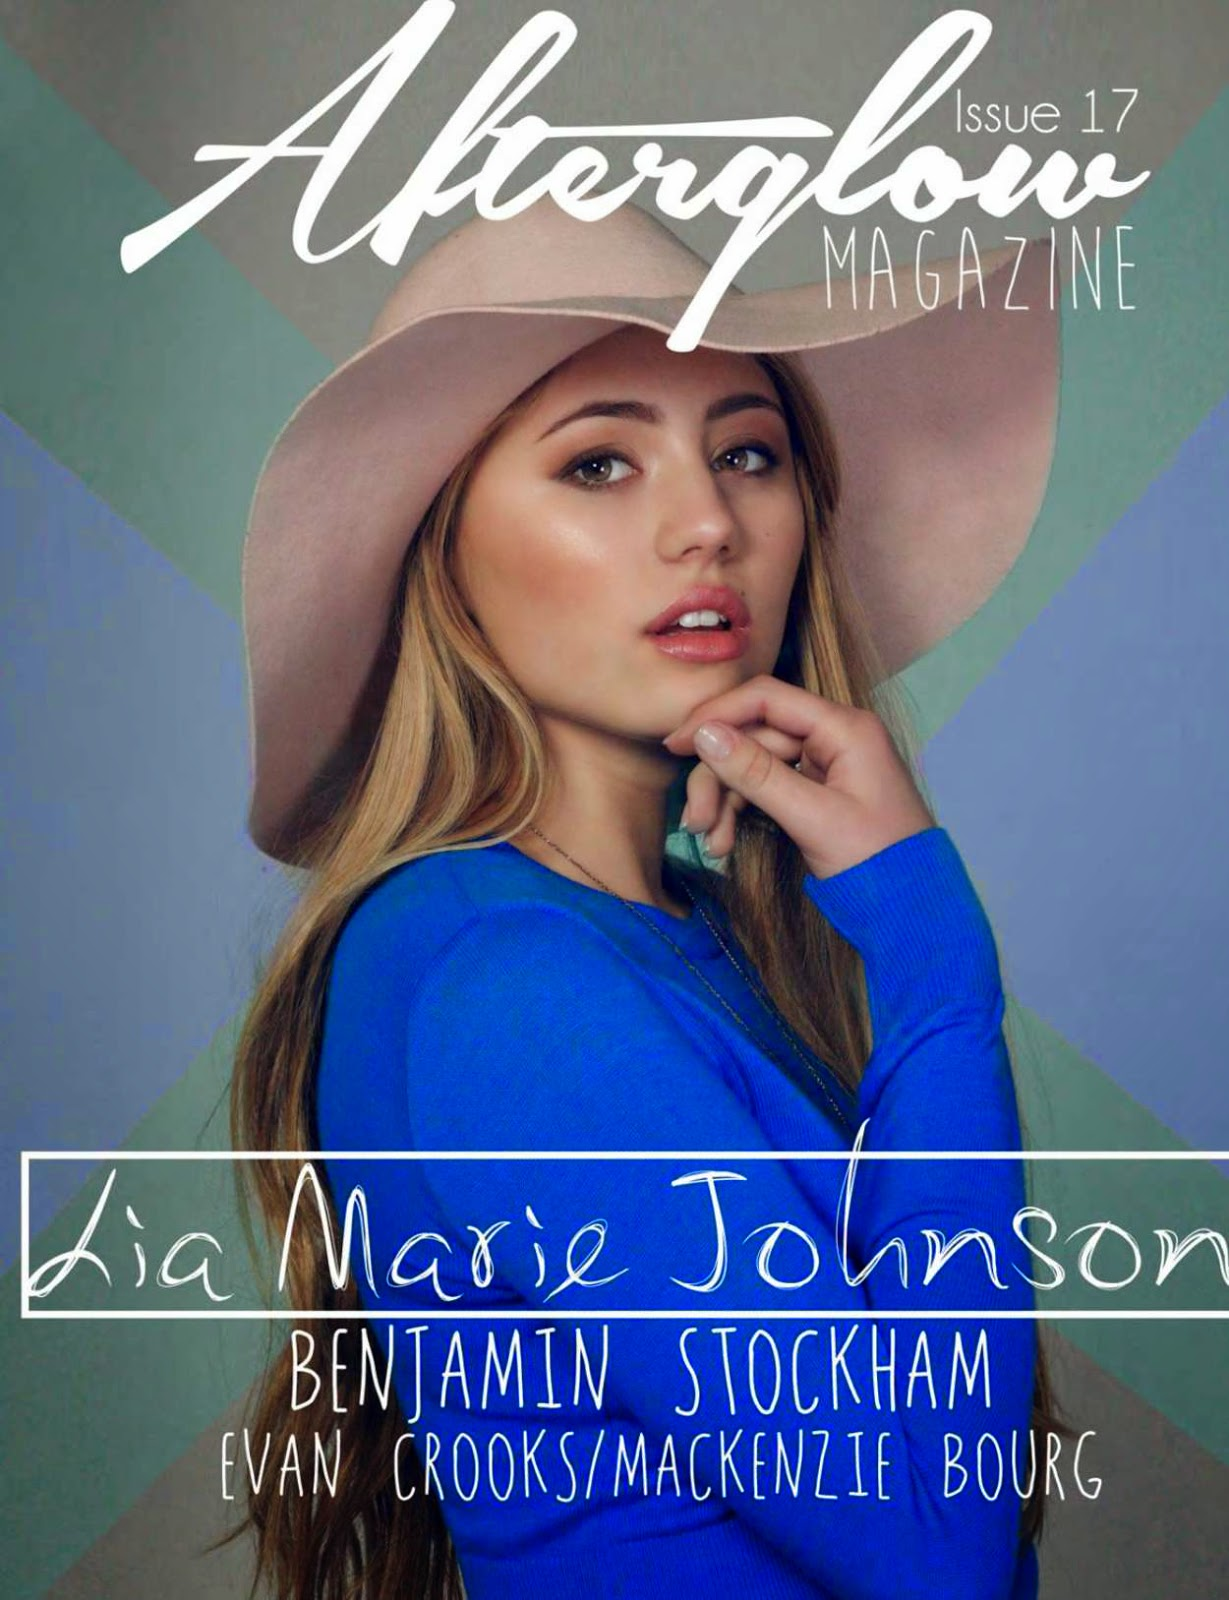 Actress: Lia Marie Johnson for Afterglow Magazine